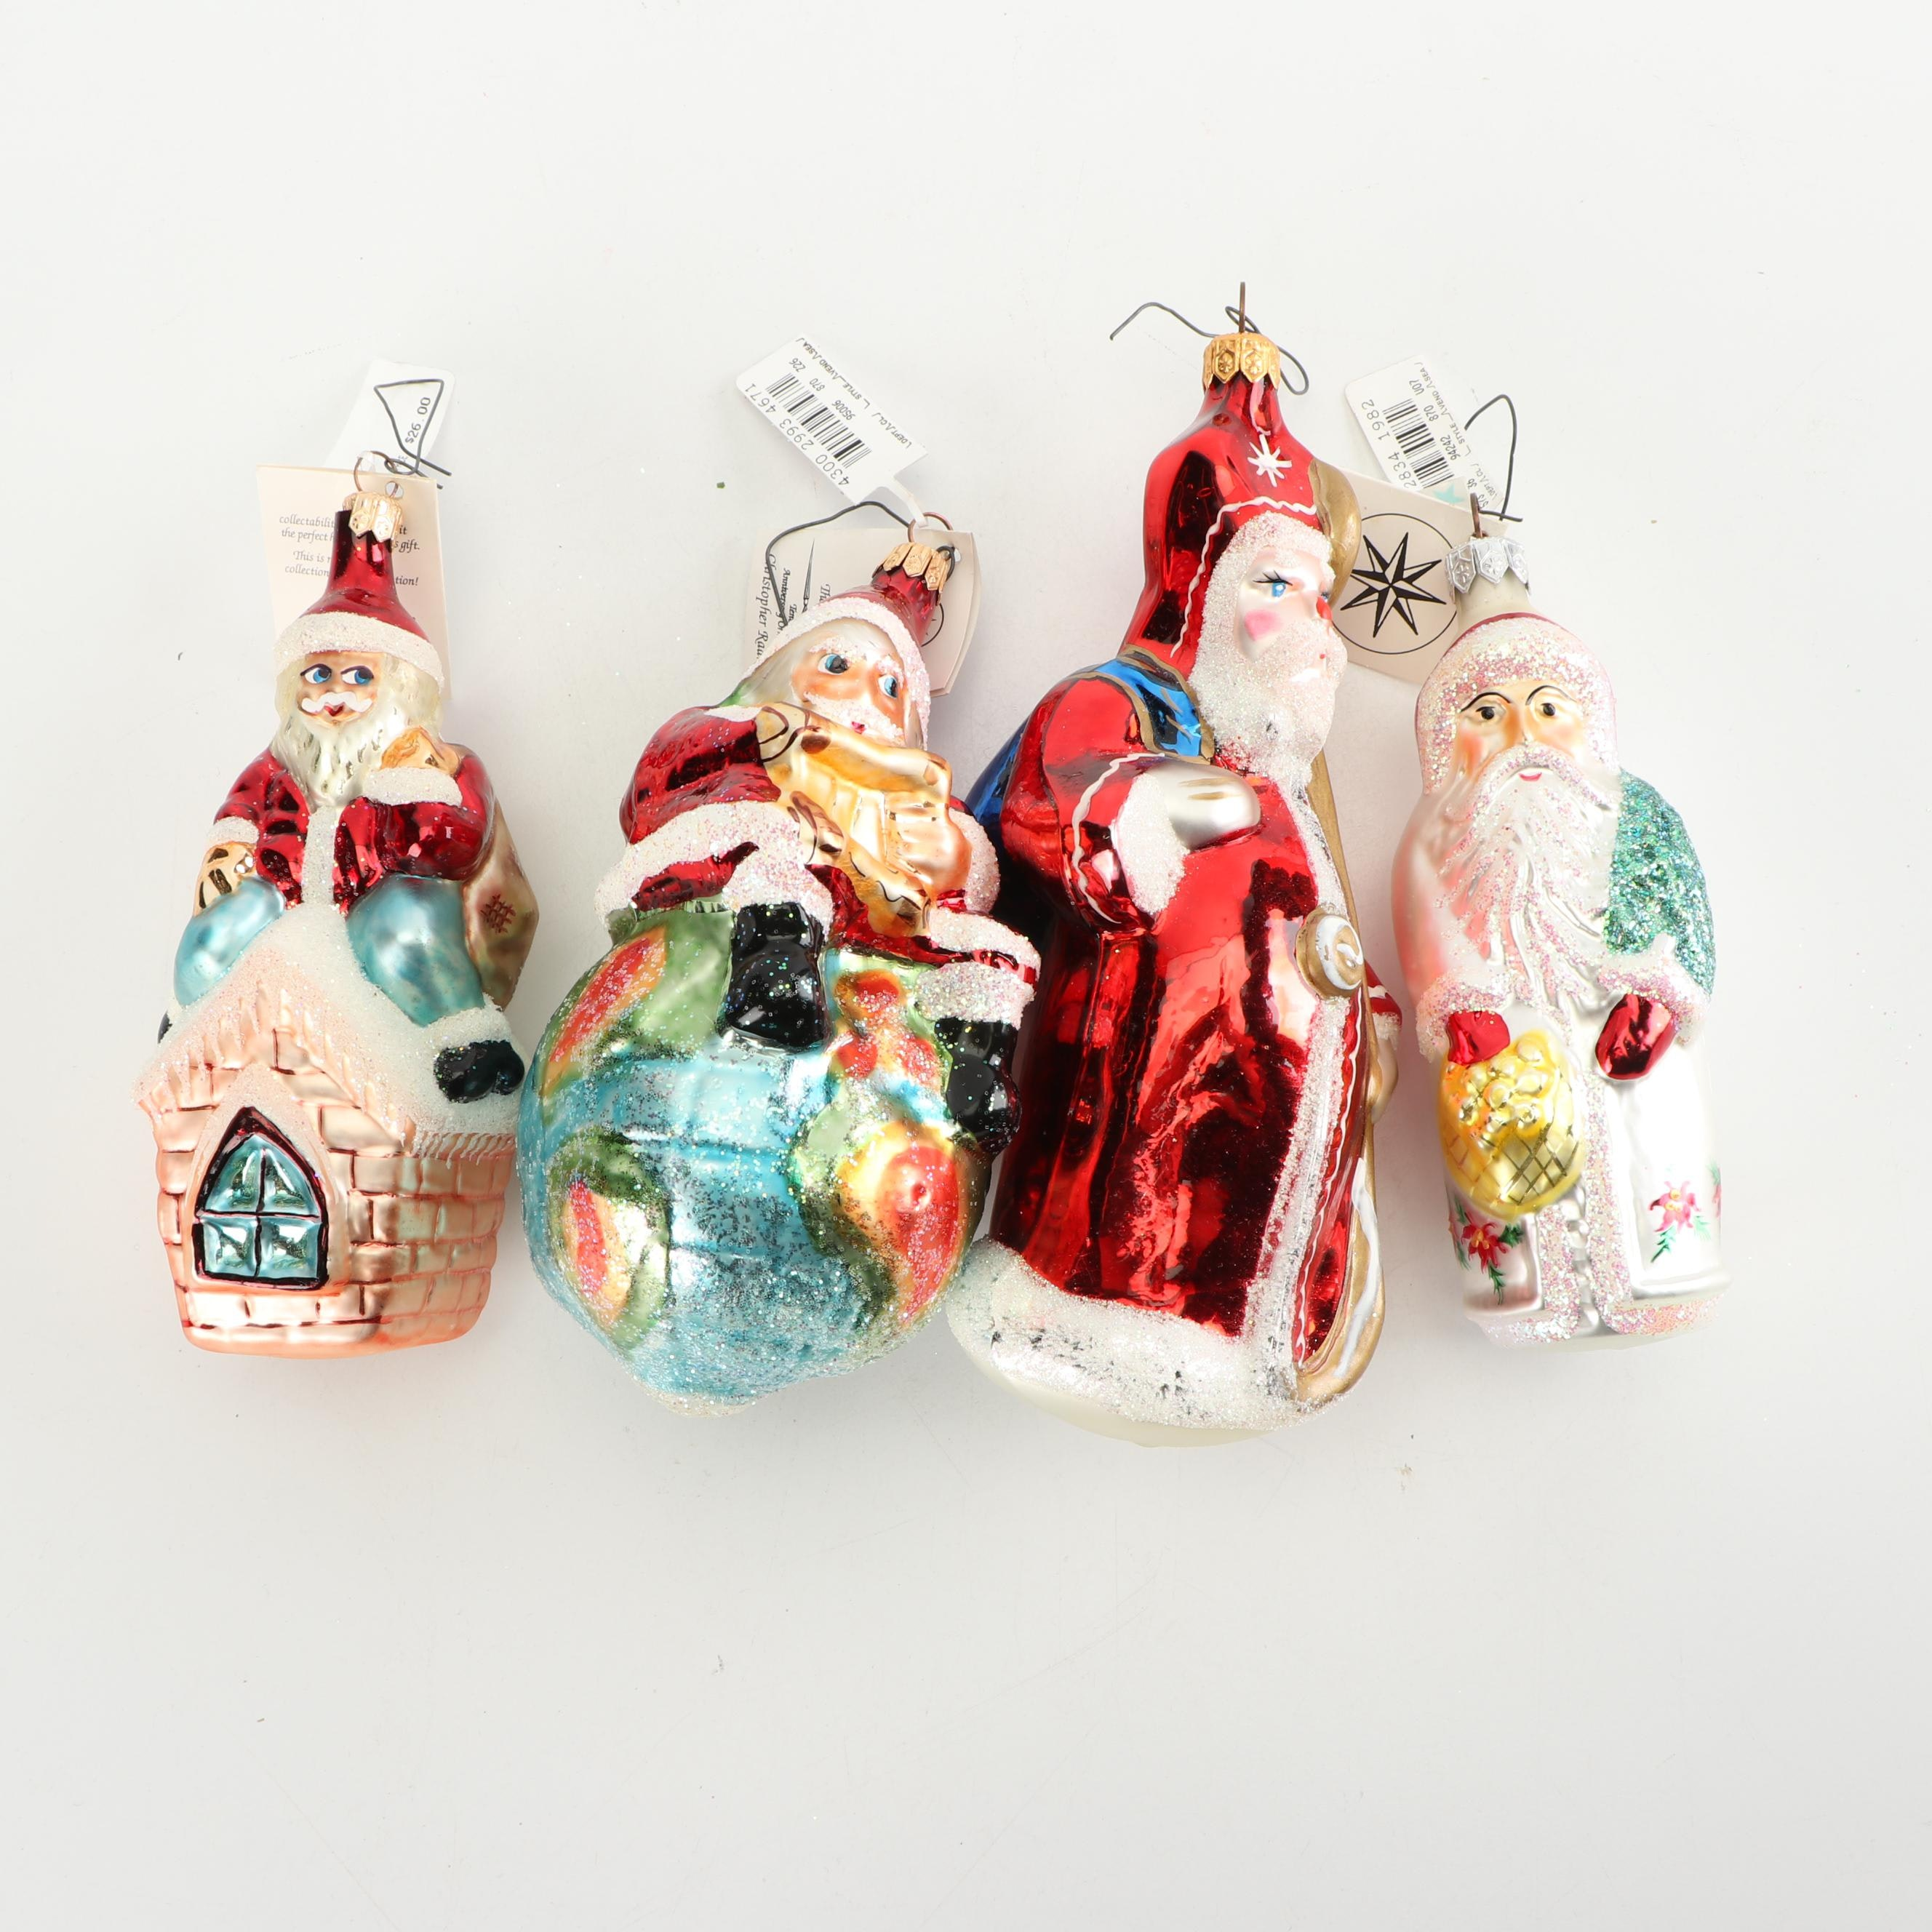 Christopher Radko Santa Claus Glass Ornaments